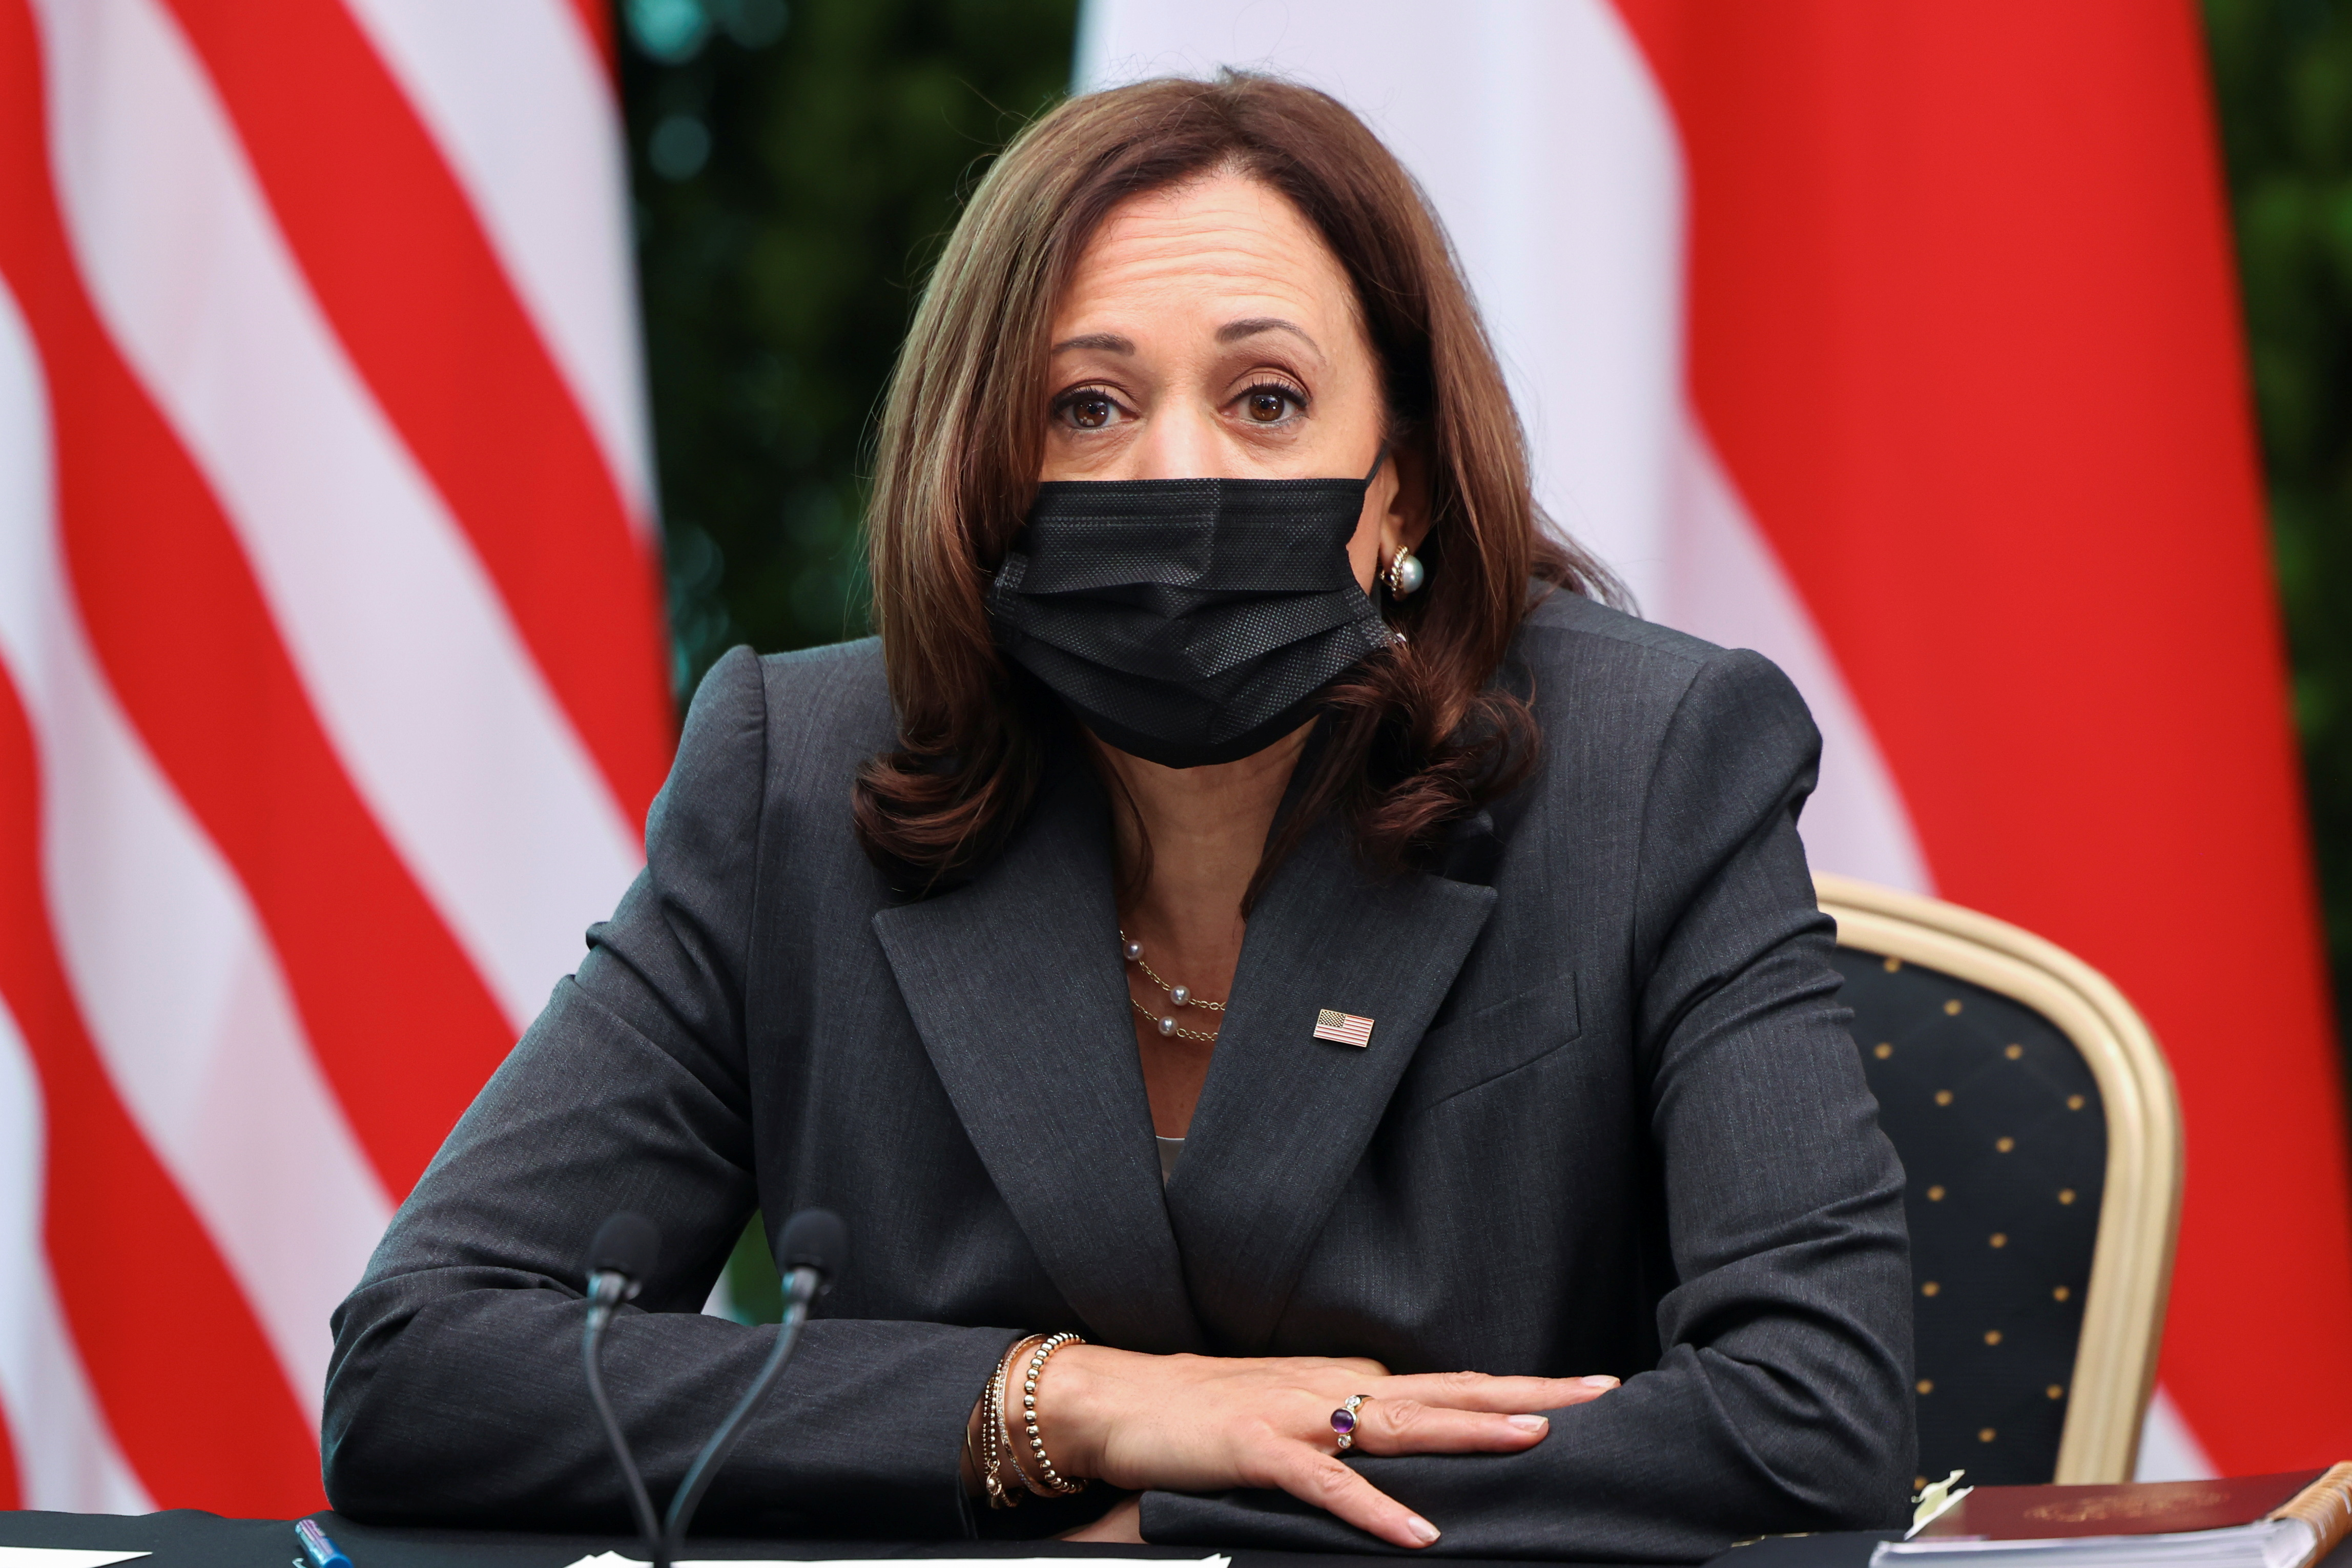 U.S. Vice President Kamala Harris attends a roundtable at Gardens by the Bay in Singapore before departing for Vietnam on the second leg of her Asia trip, August, 24, 2021. REUTERS/Evelyn Hockstein/Pool